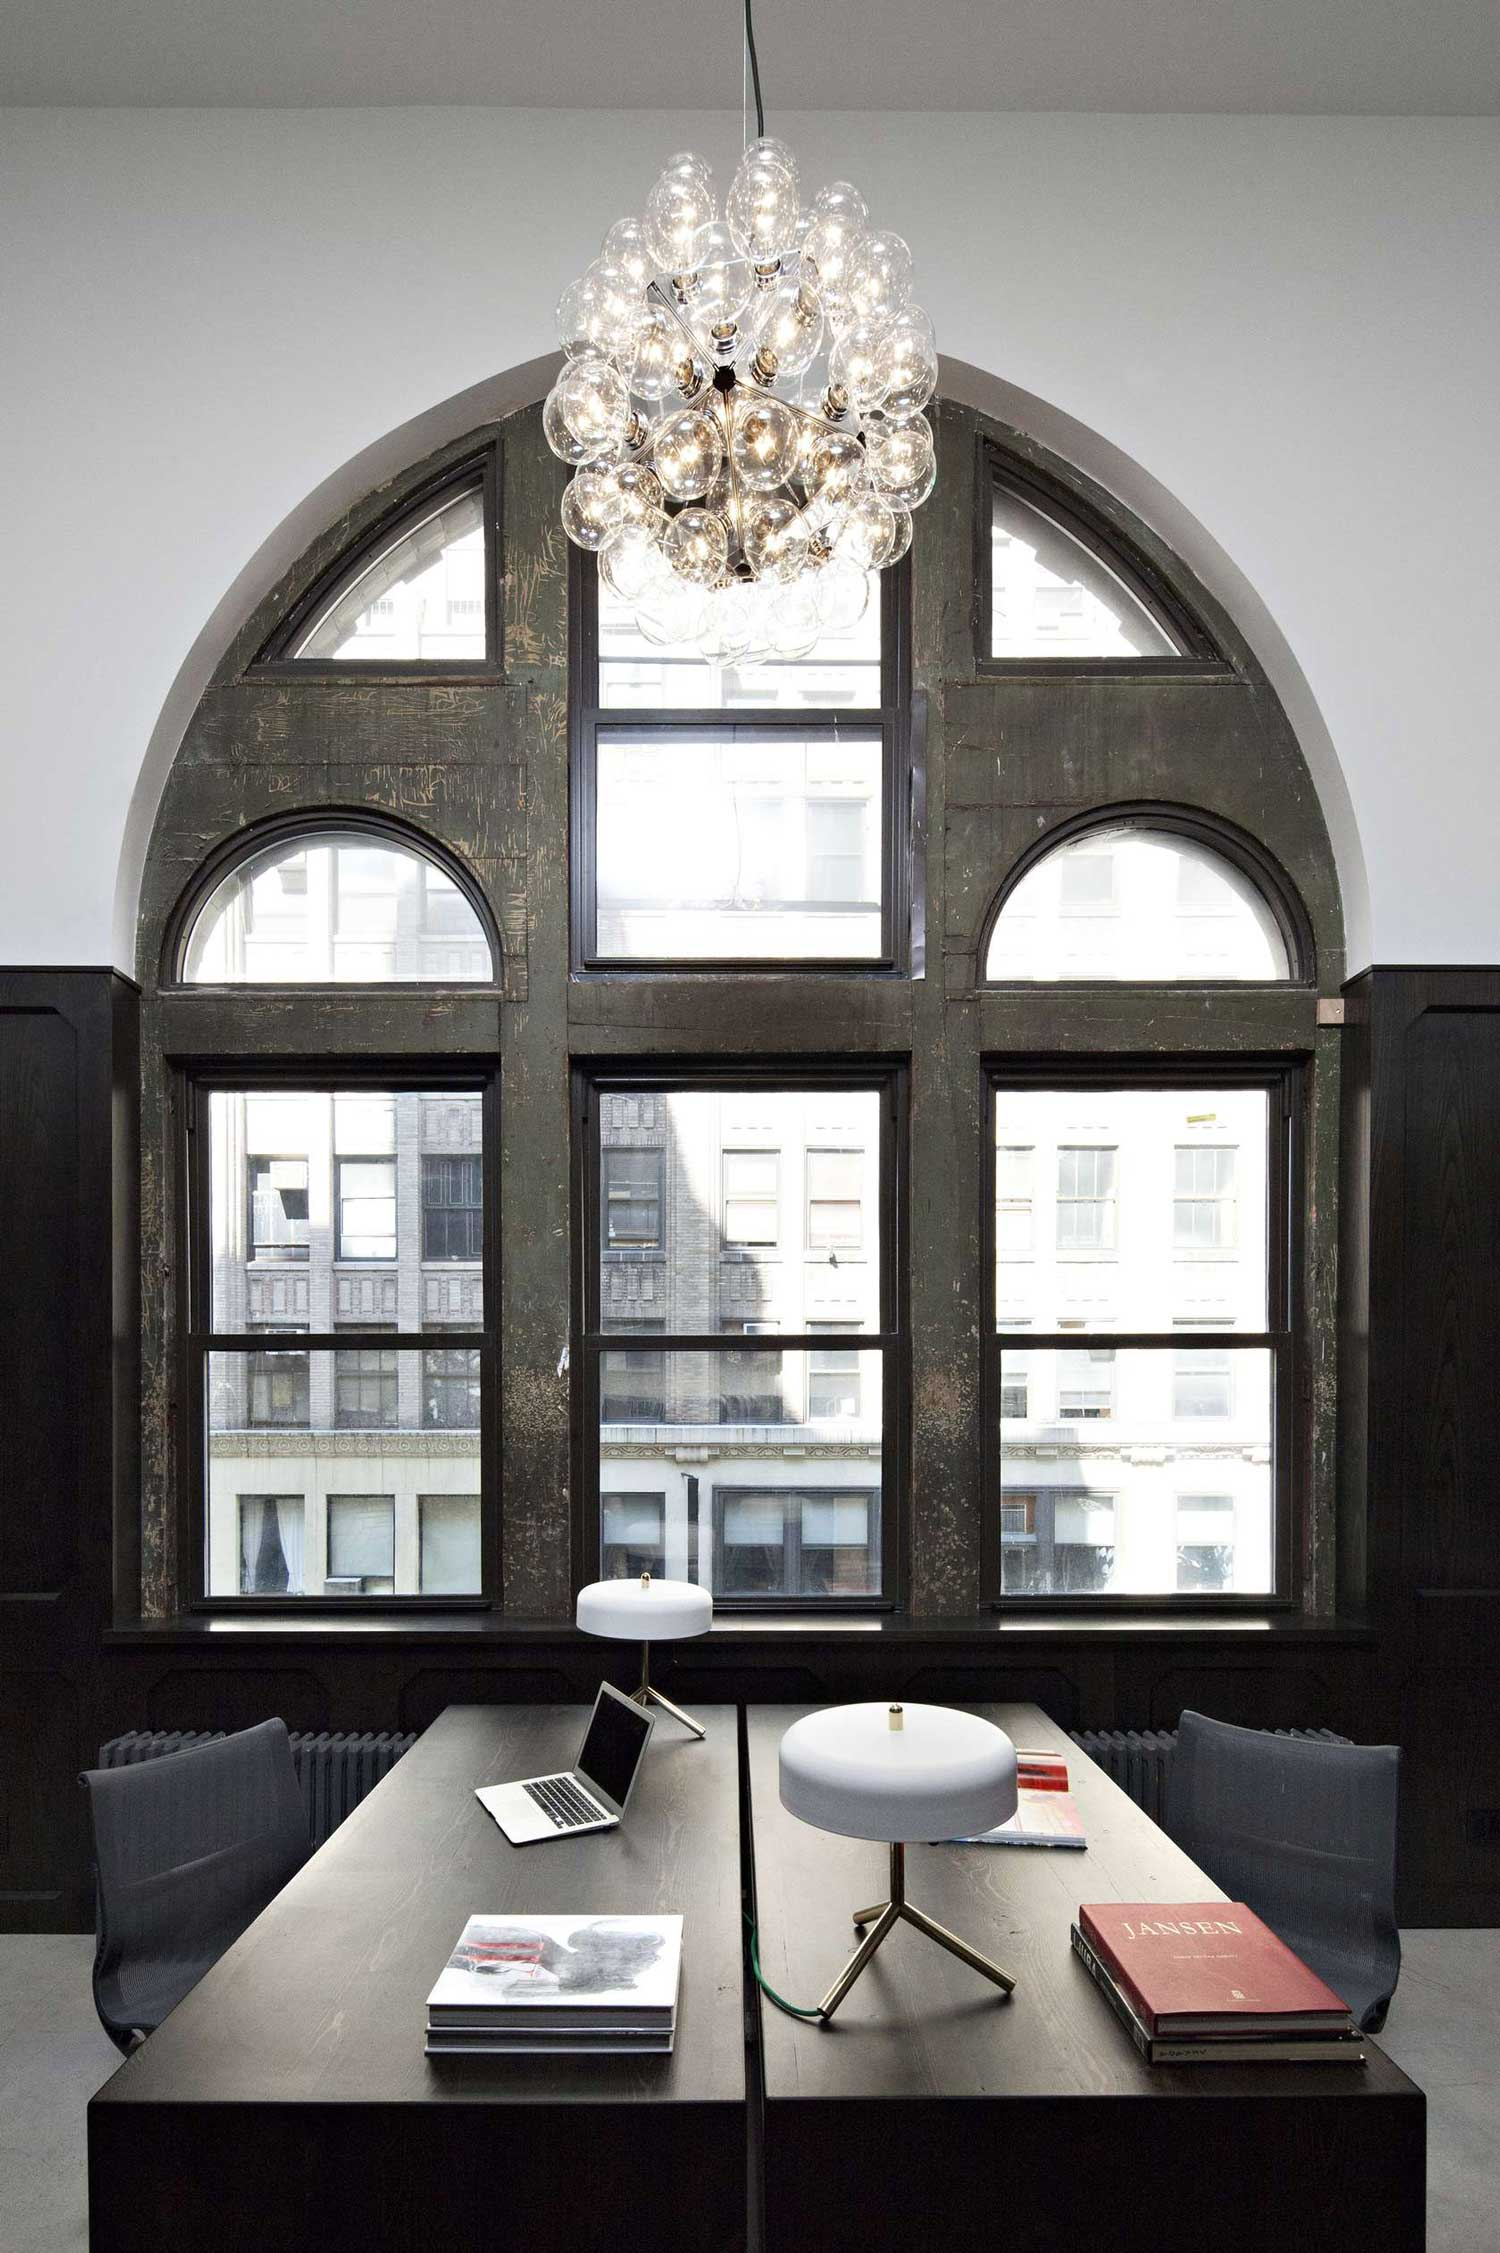 Architecture interior design nyc firehouse transformed into a cool town hq by rafael de cardenas architecture at large